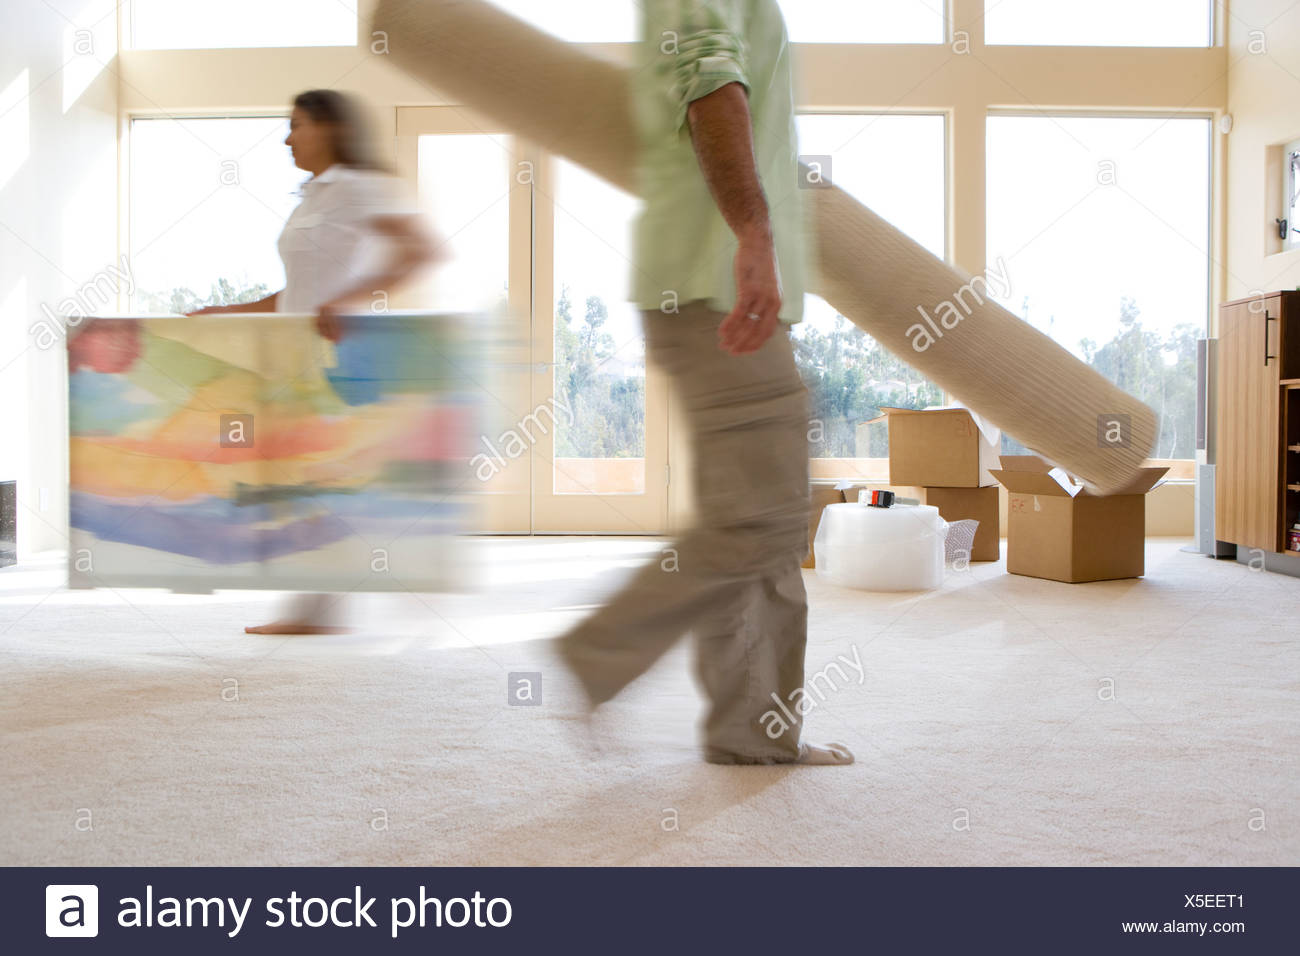 Couple moving things into new home - Stock Image